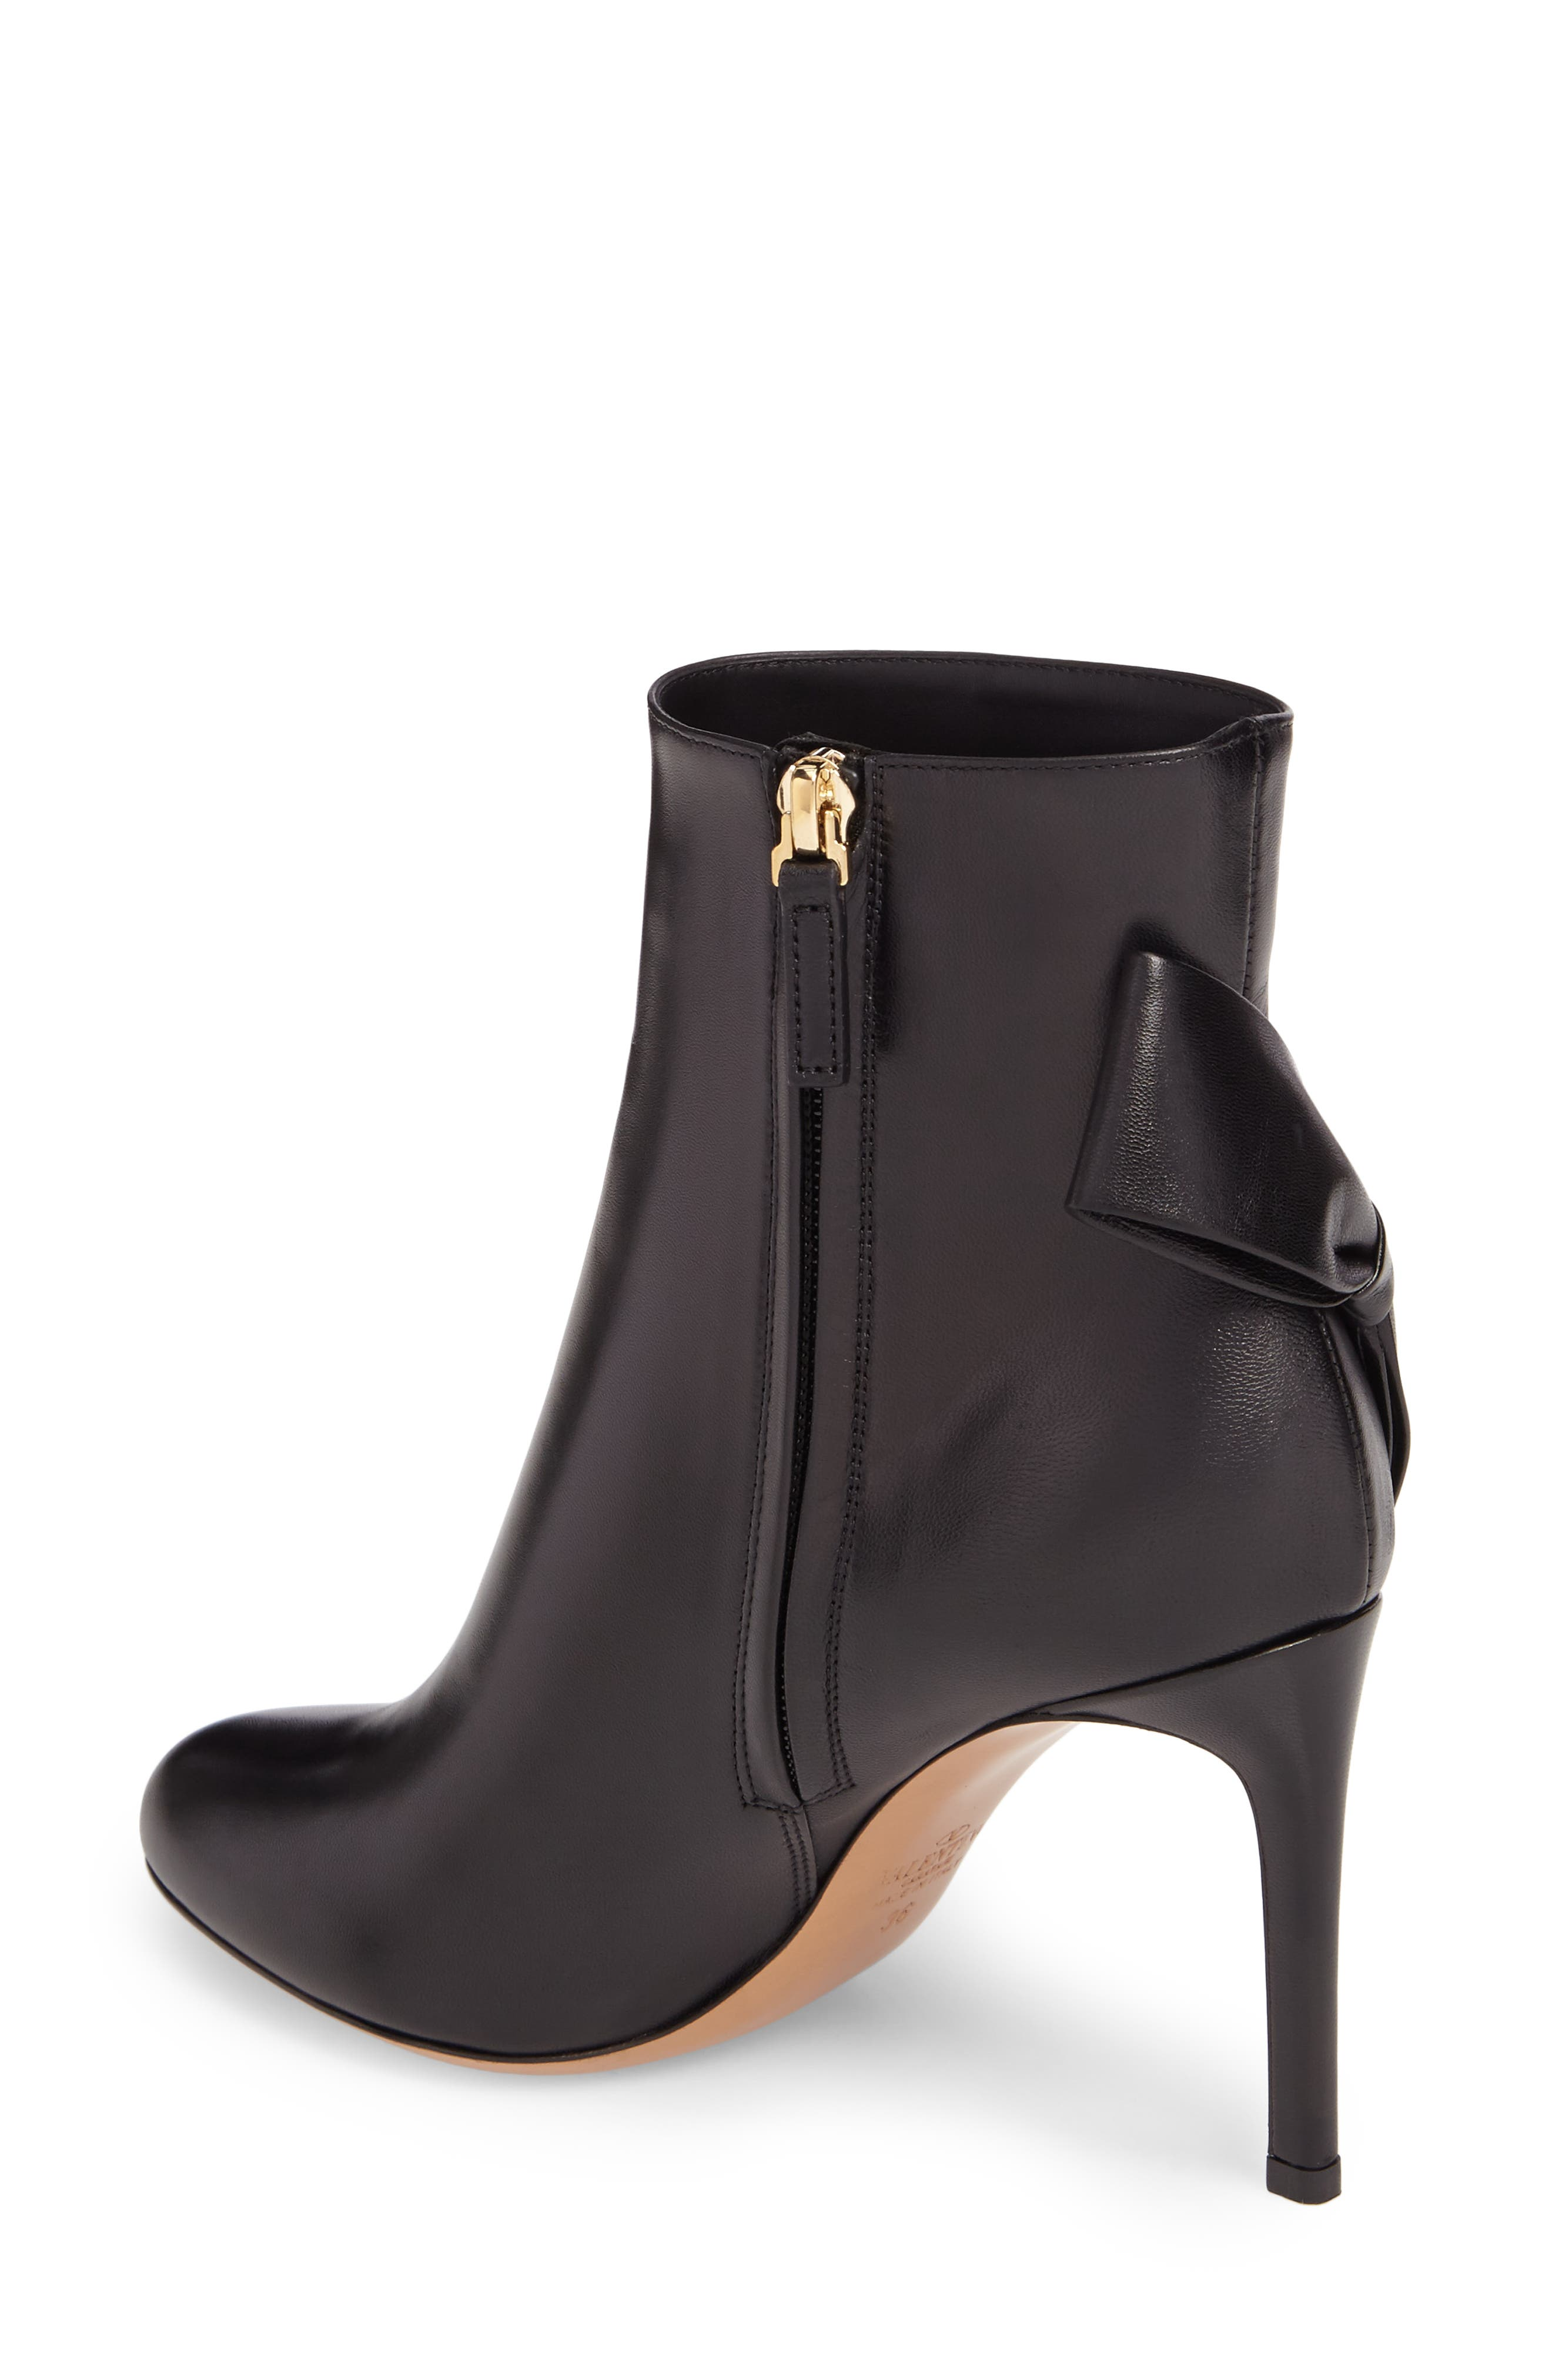 GARAVANI Pretty Bow Bootie,                             Alternate thumbnail 2, color,                             Black Leather